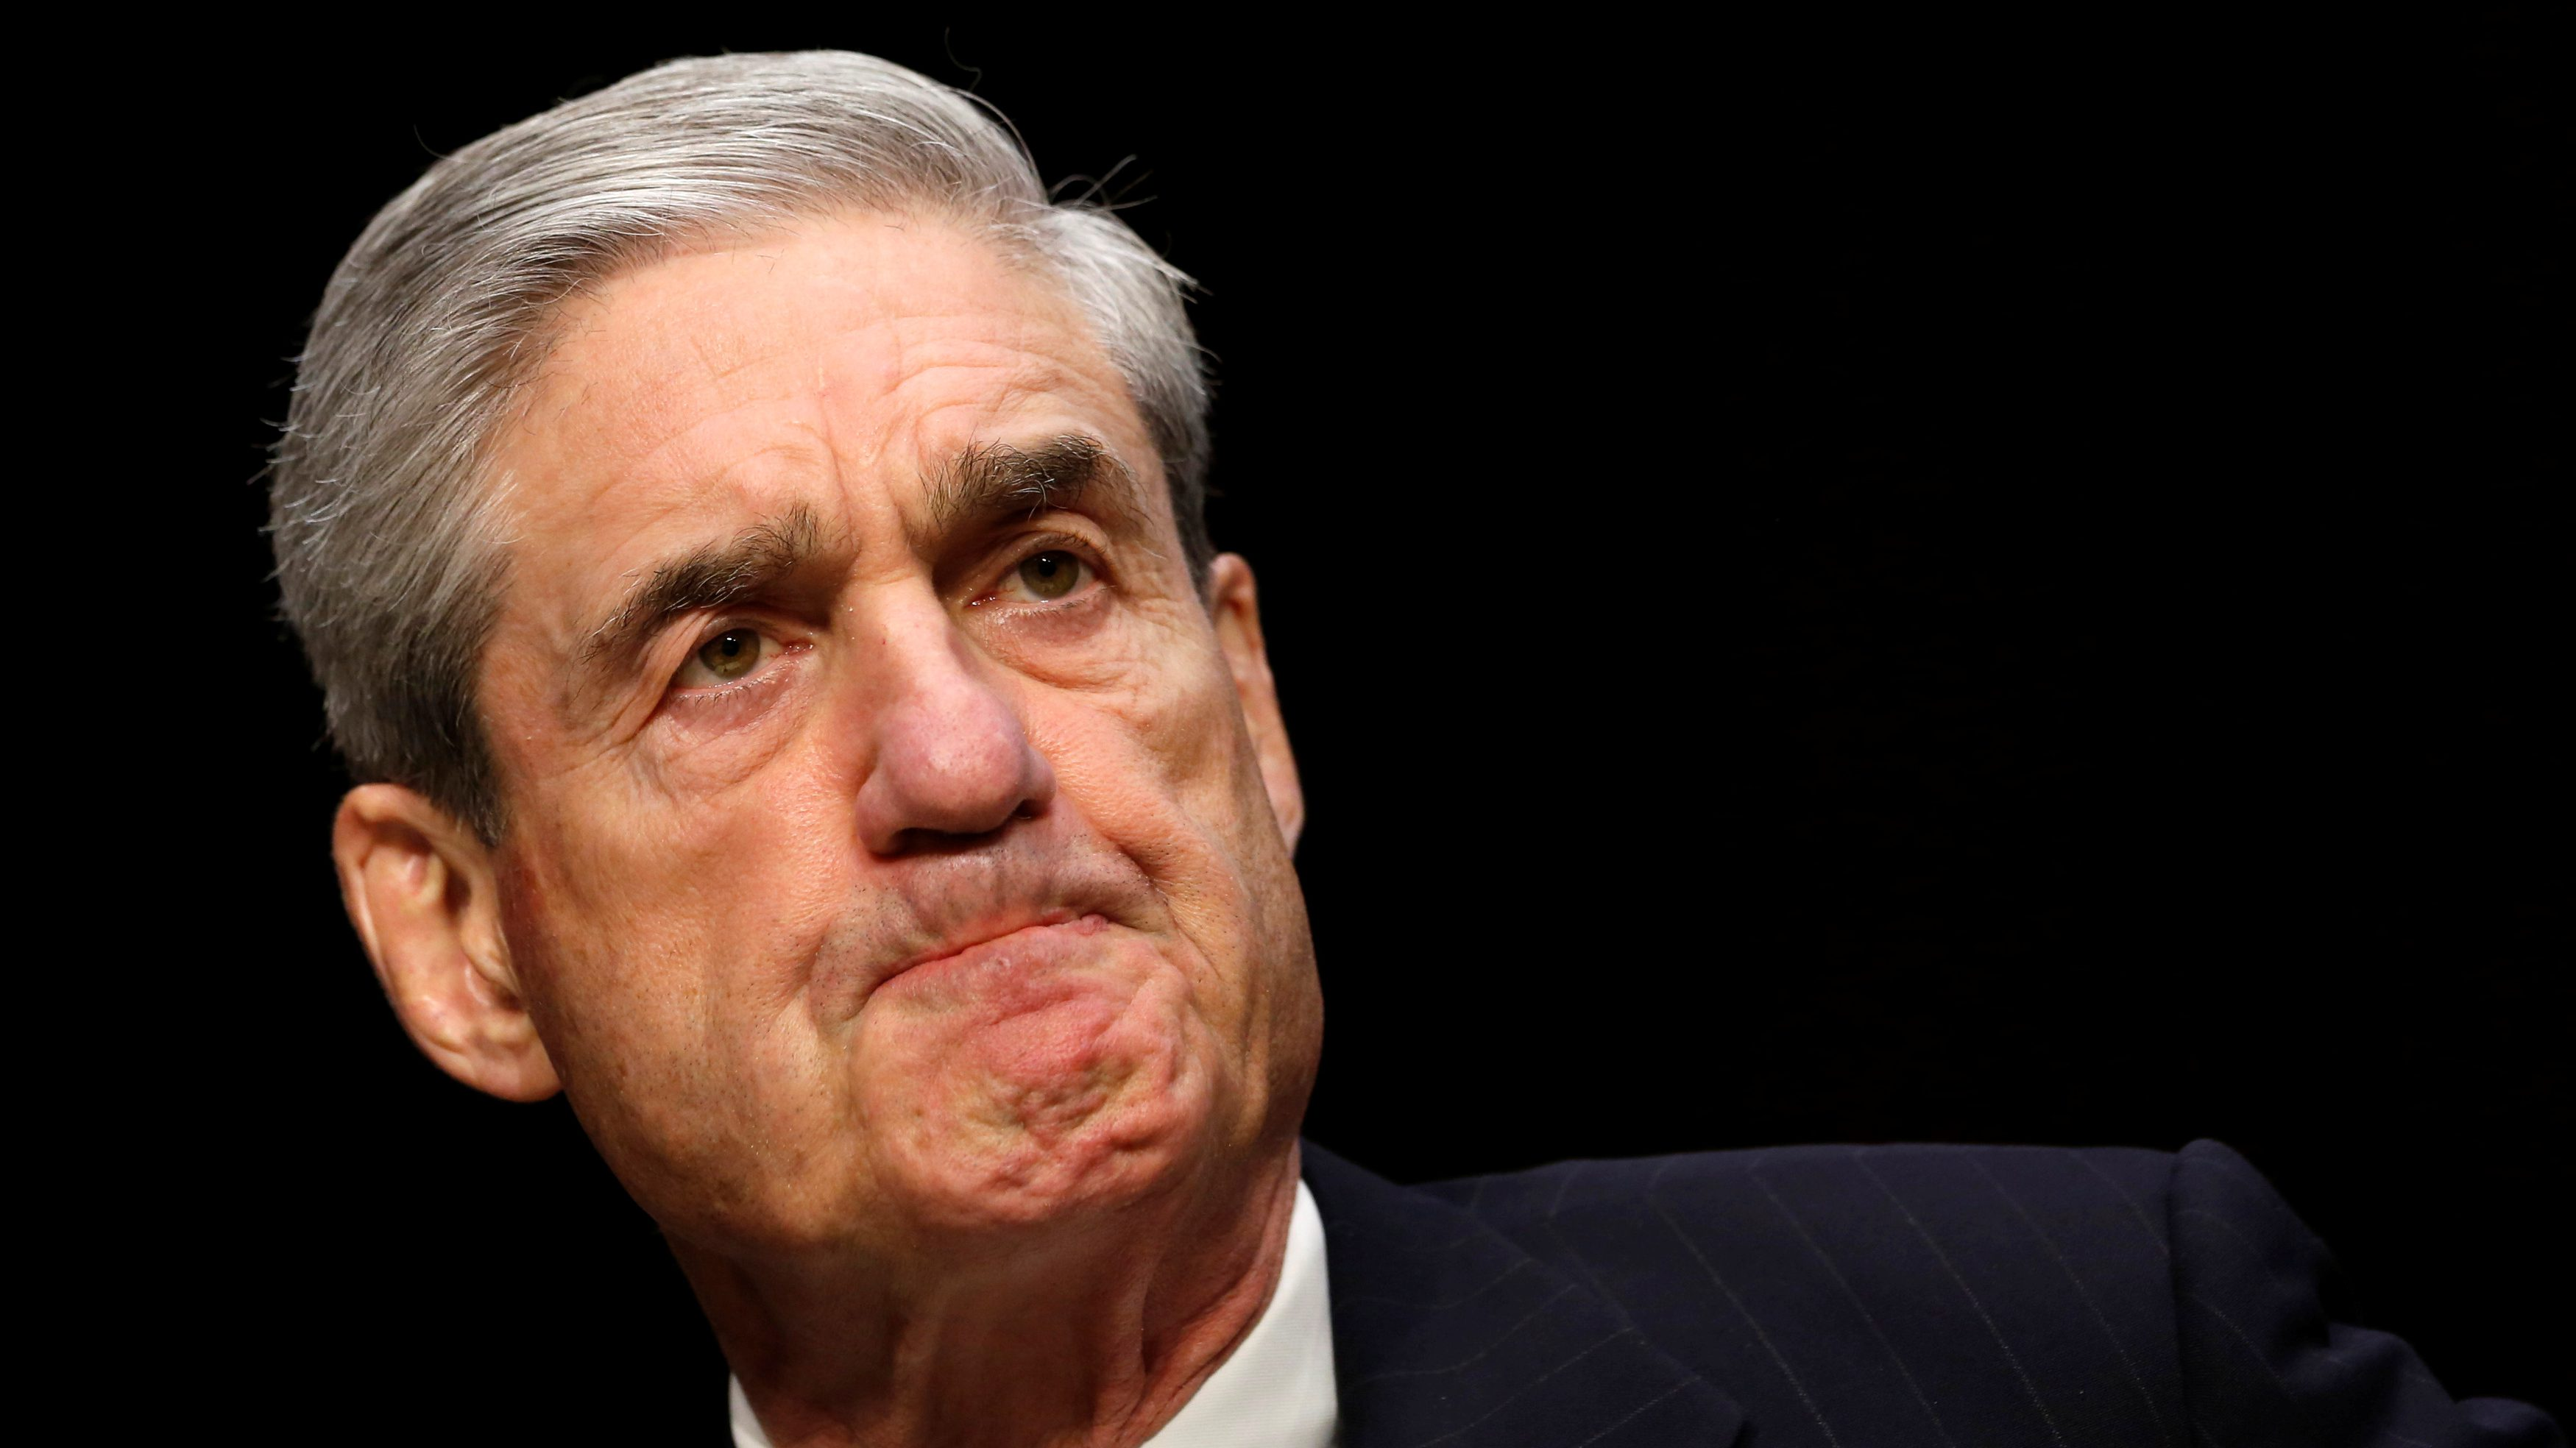 """FBI Director Robert Mueller testifies before a Senate Intelligence Committee hearing on """"Current and Projected National Security Threats to the United States"""" on Capitol Hill in Washington March 12, 2013. REUTERS/Kevin Lamarque/File Photo - RC19BC634000"""